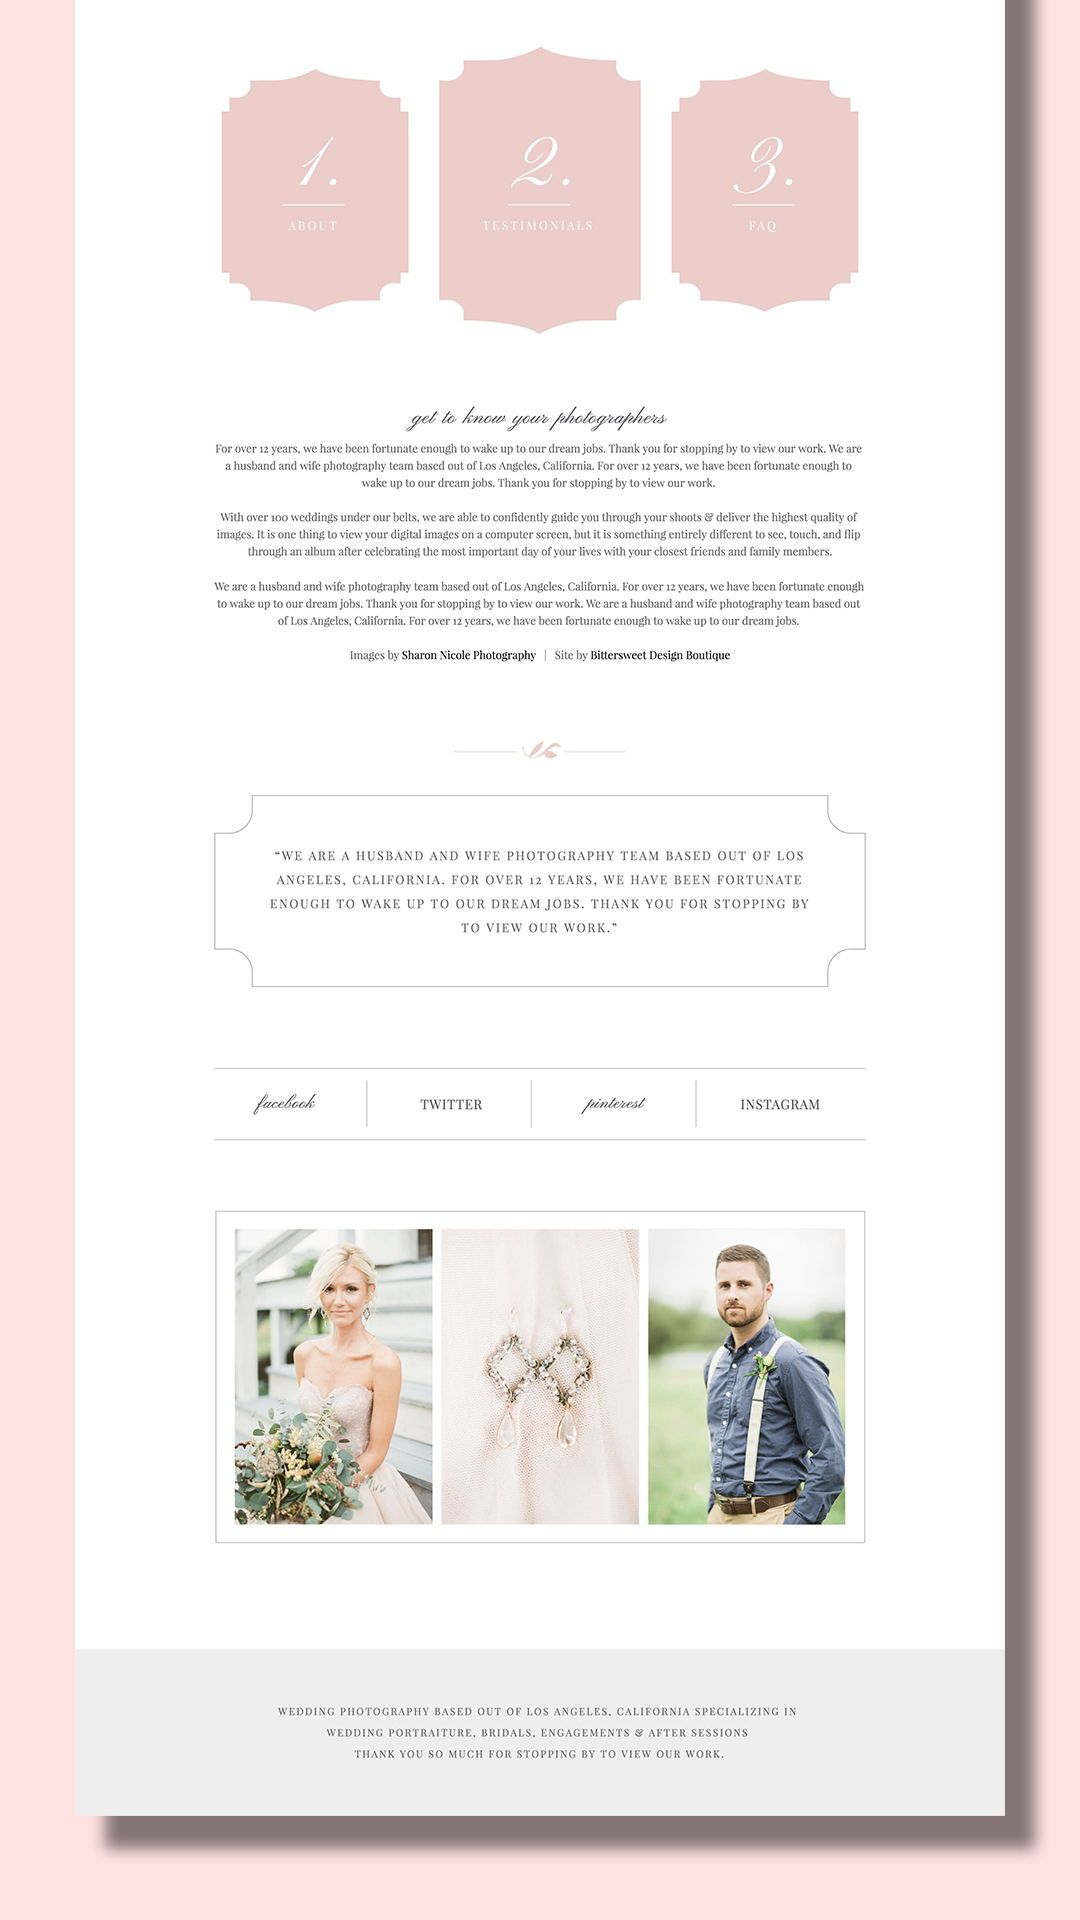 Our High End Squarespace Templates Allow Professional Photographers Creatives To Photographer Marketing Photography Marketing Materials Photography Templates